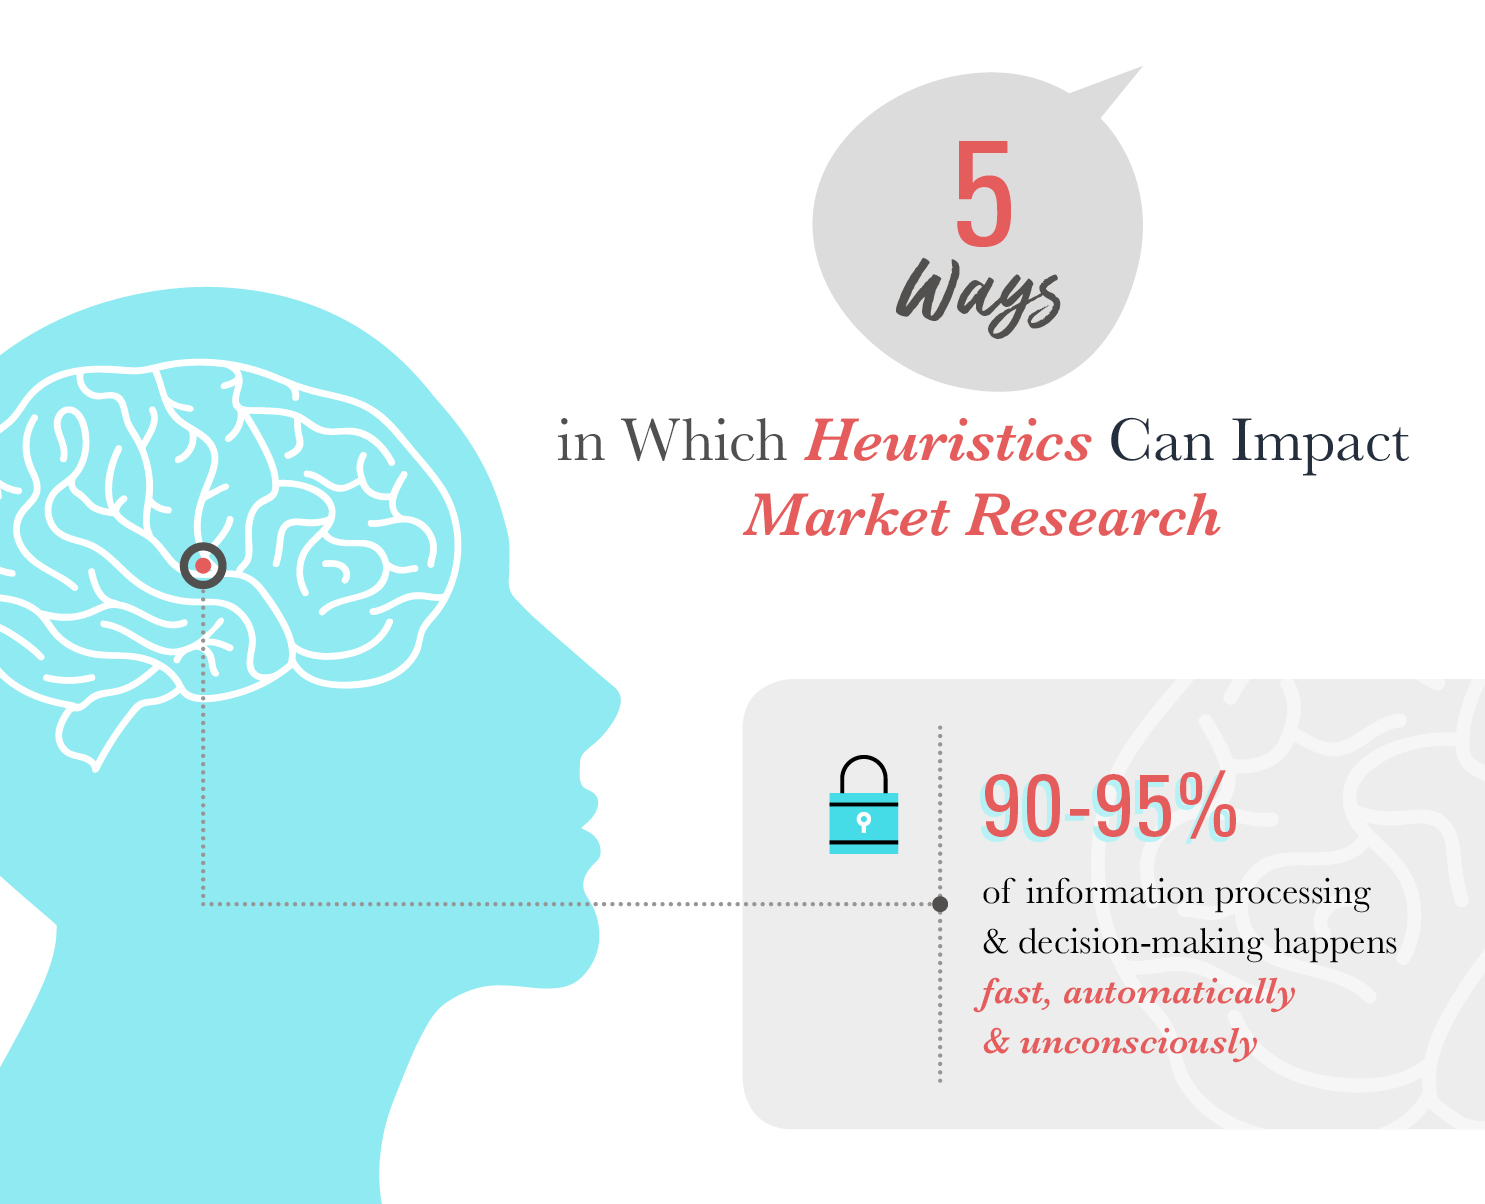 5 Ways in Which Heuristics Can Impact Market Research